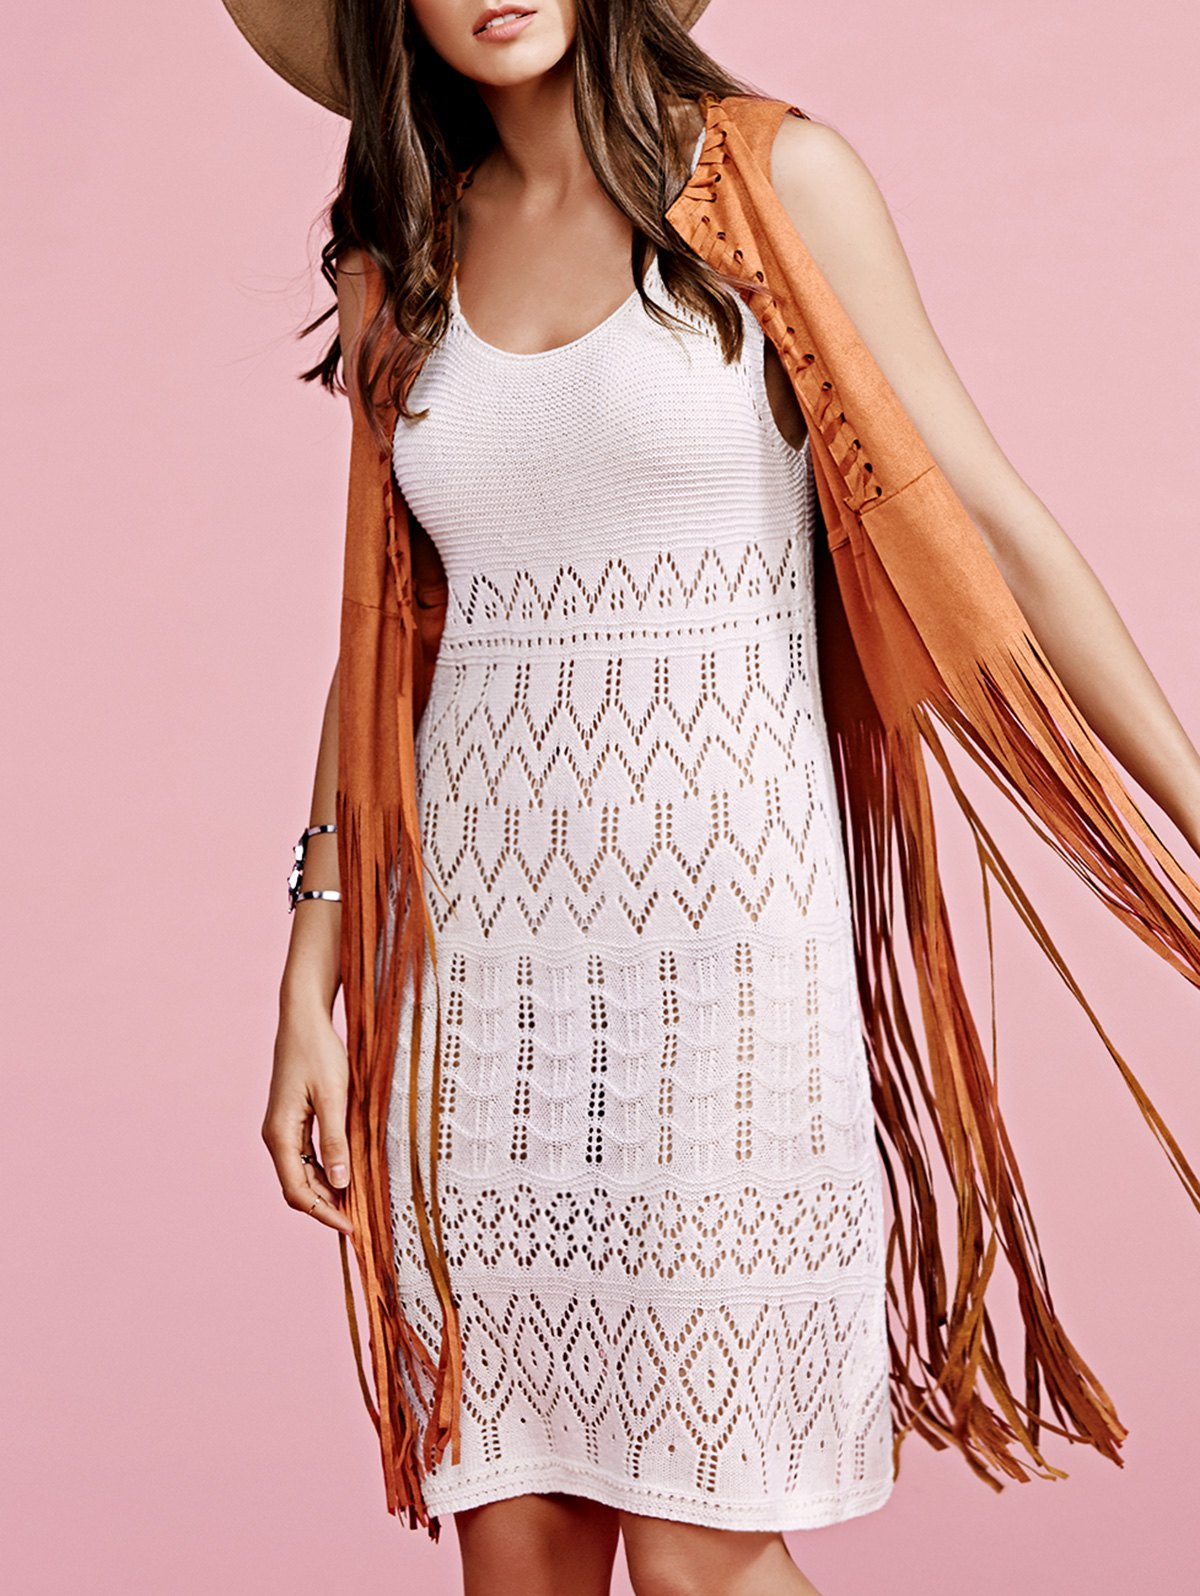 Solid Color Cut Out Round Neck Sleeveless Crochet Dress